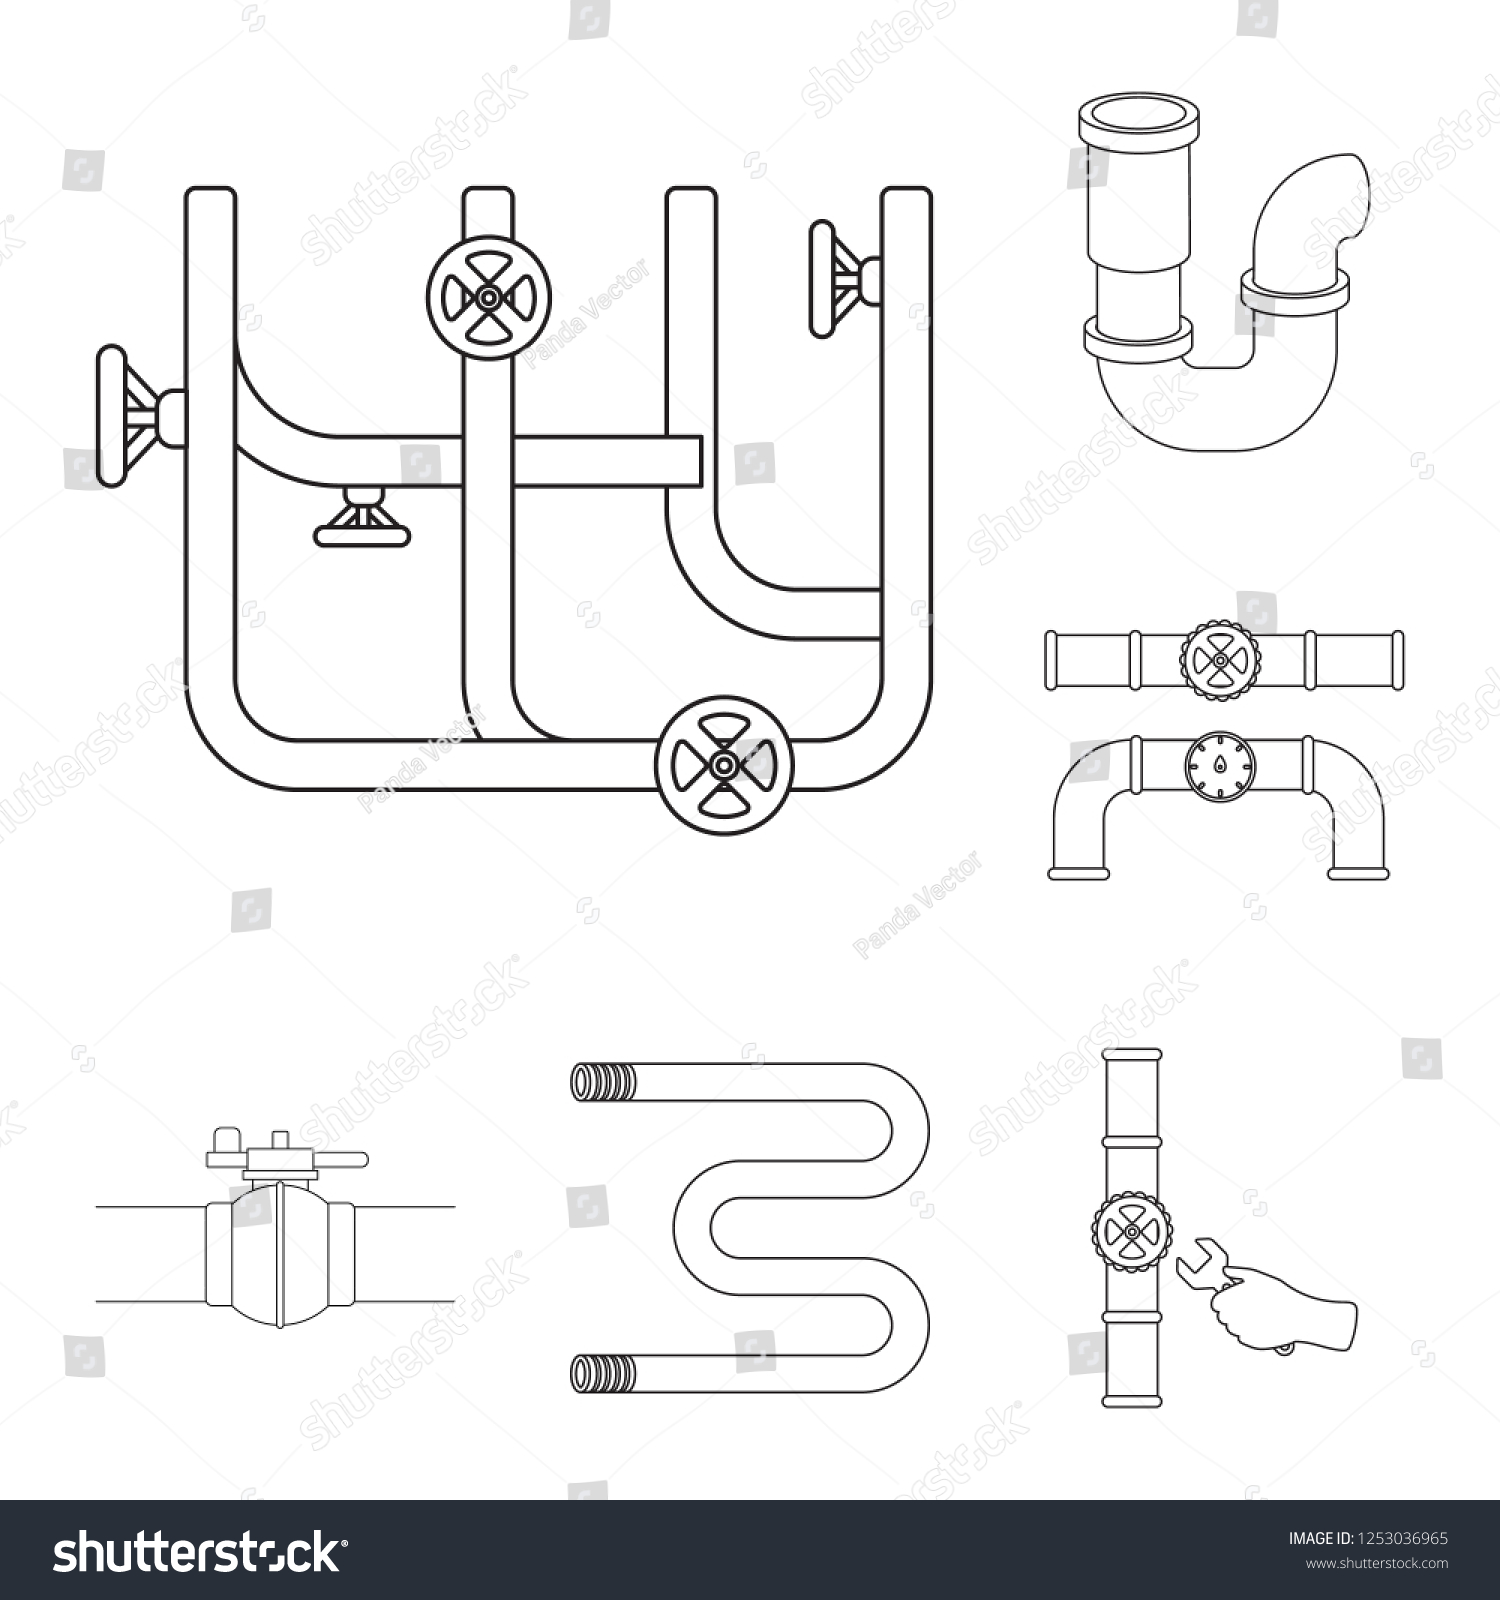 Vector Design Pipe Plumbing Logo Collection Stock Royalty Piping Diagram Symbols Pictures Of And Metal Symbol For